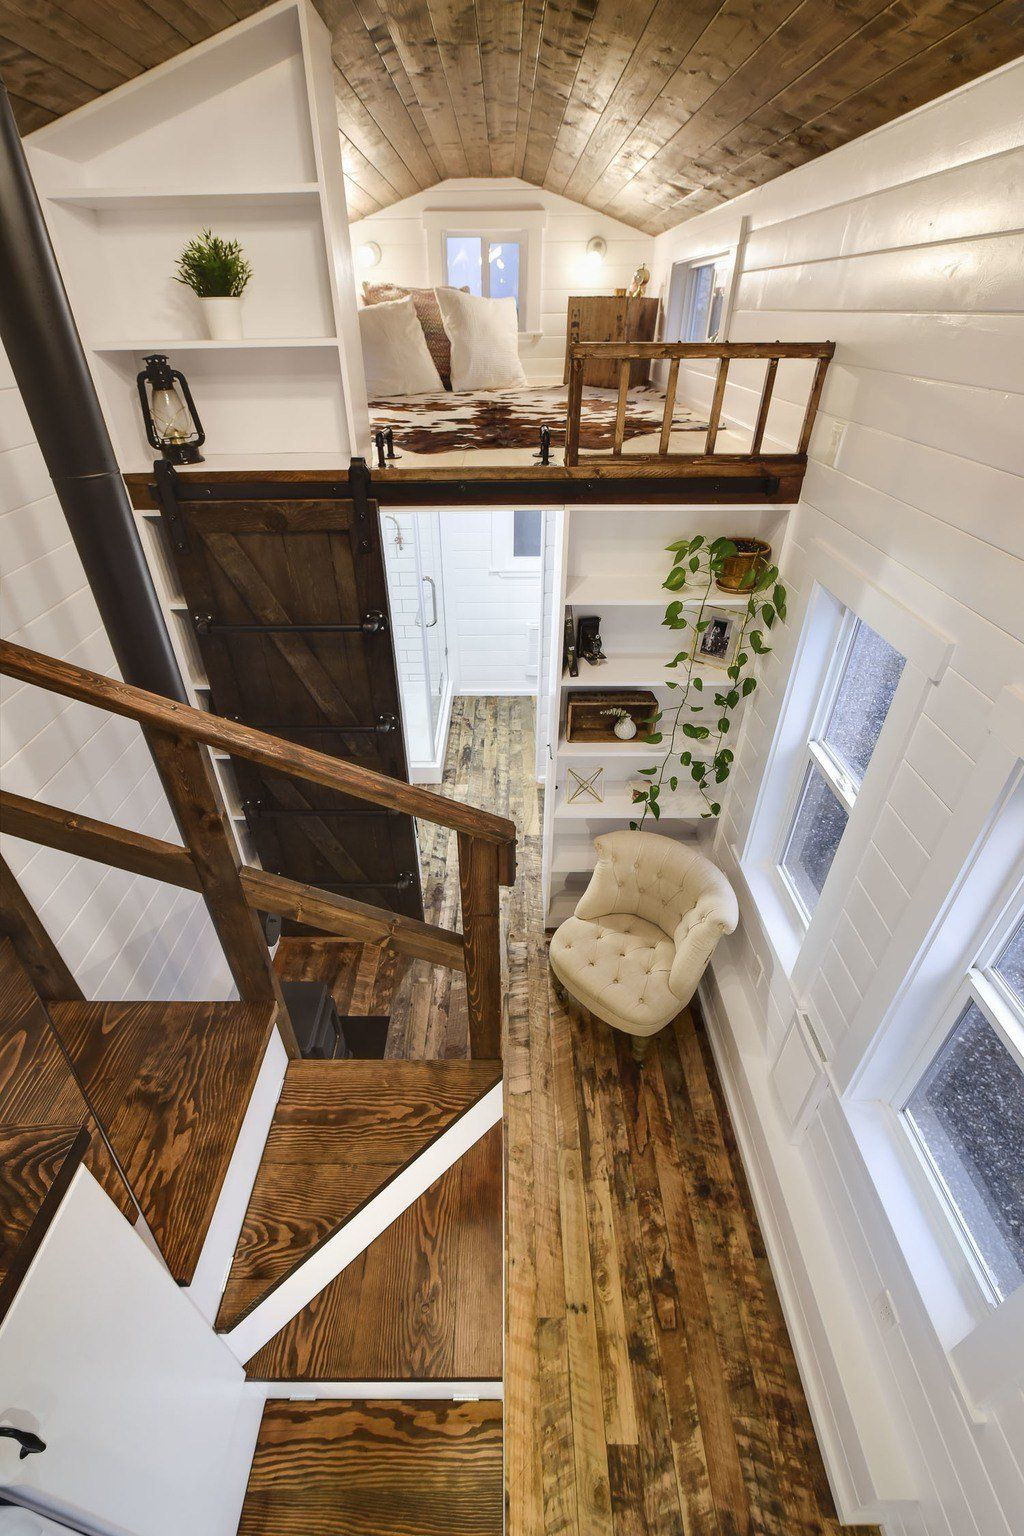 Rustic Loft A Luxury 273 Square Feet Tiny House On Wheels Built By Mint Homes In British Columbia Canada